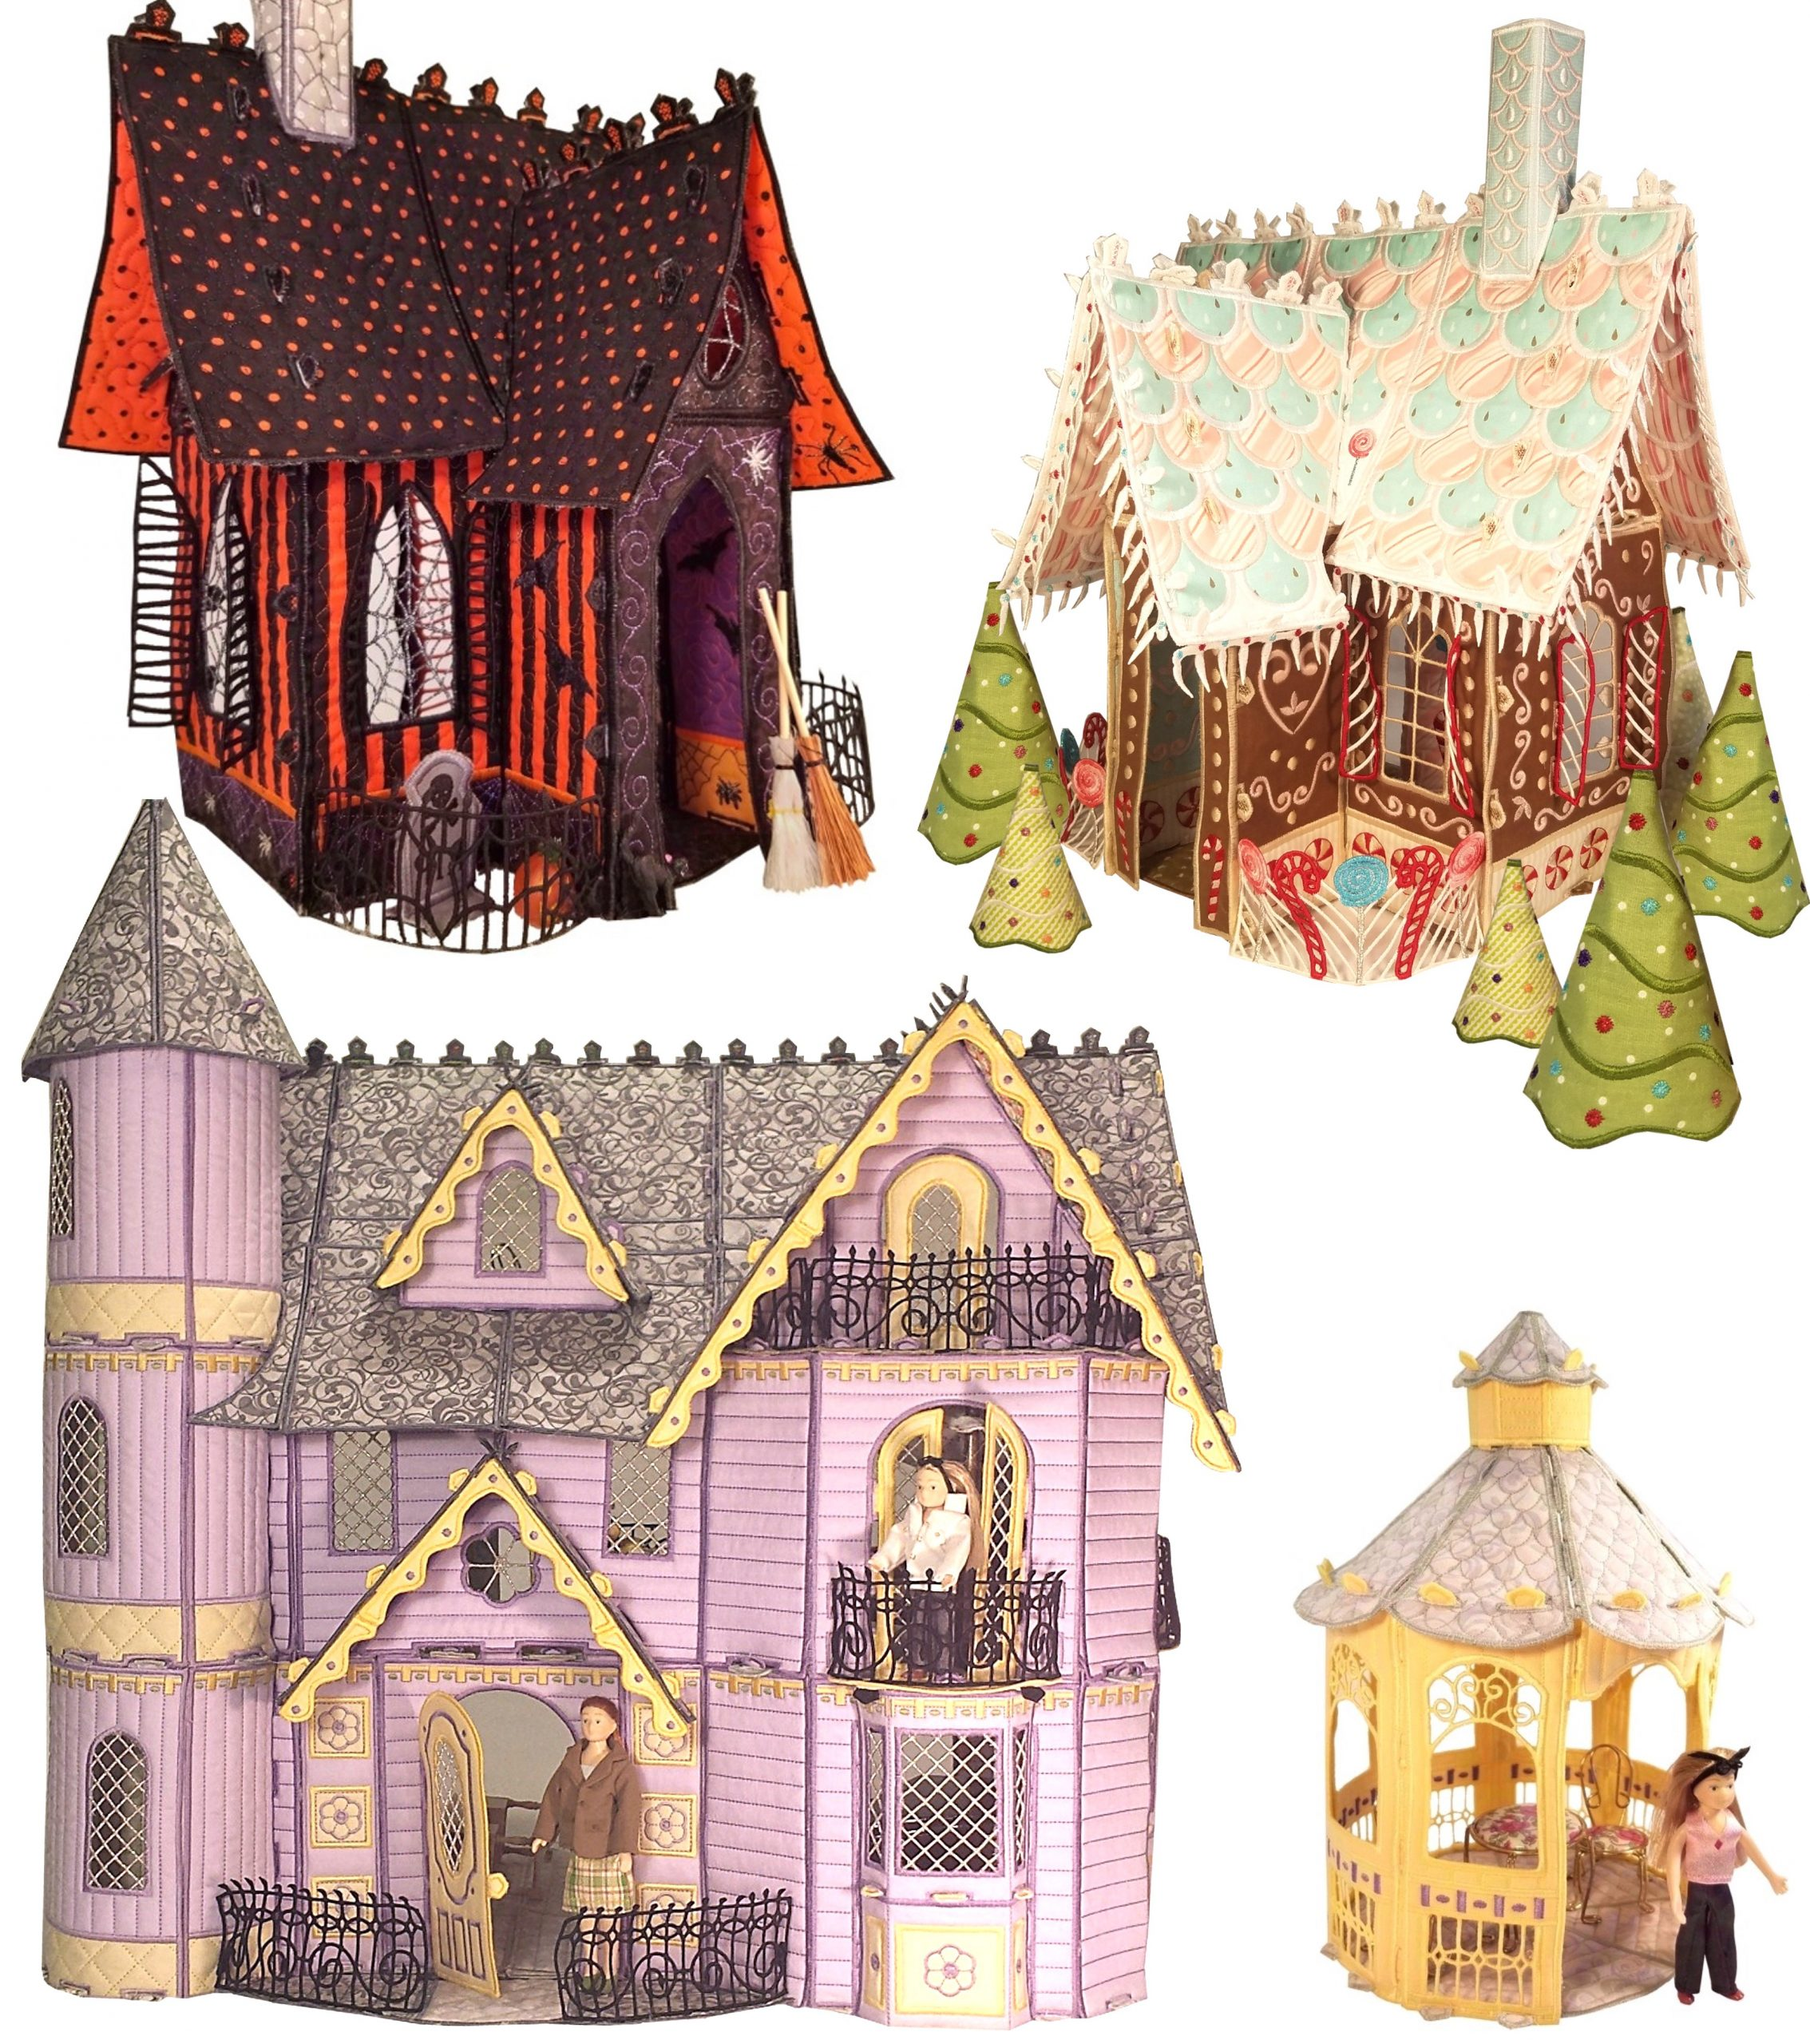 Fairy Tale Cottages by Shelly Smola